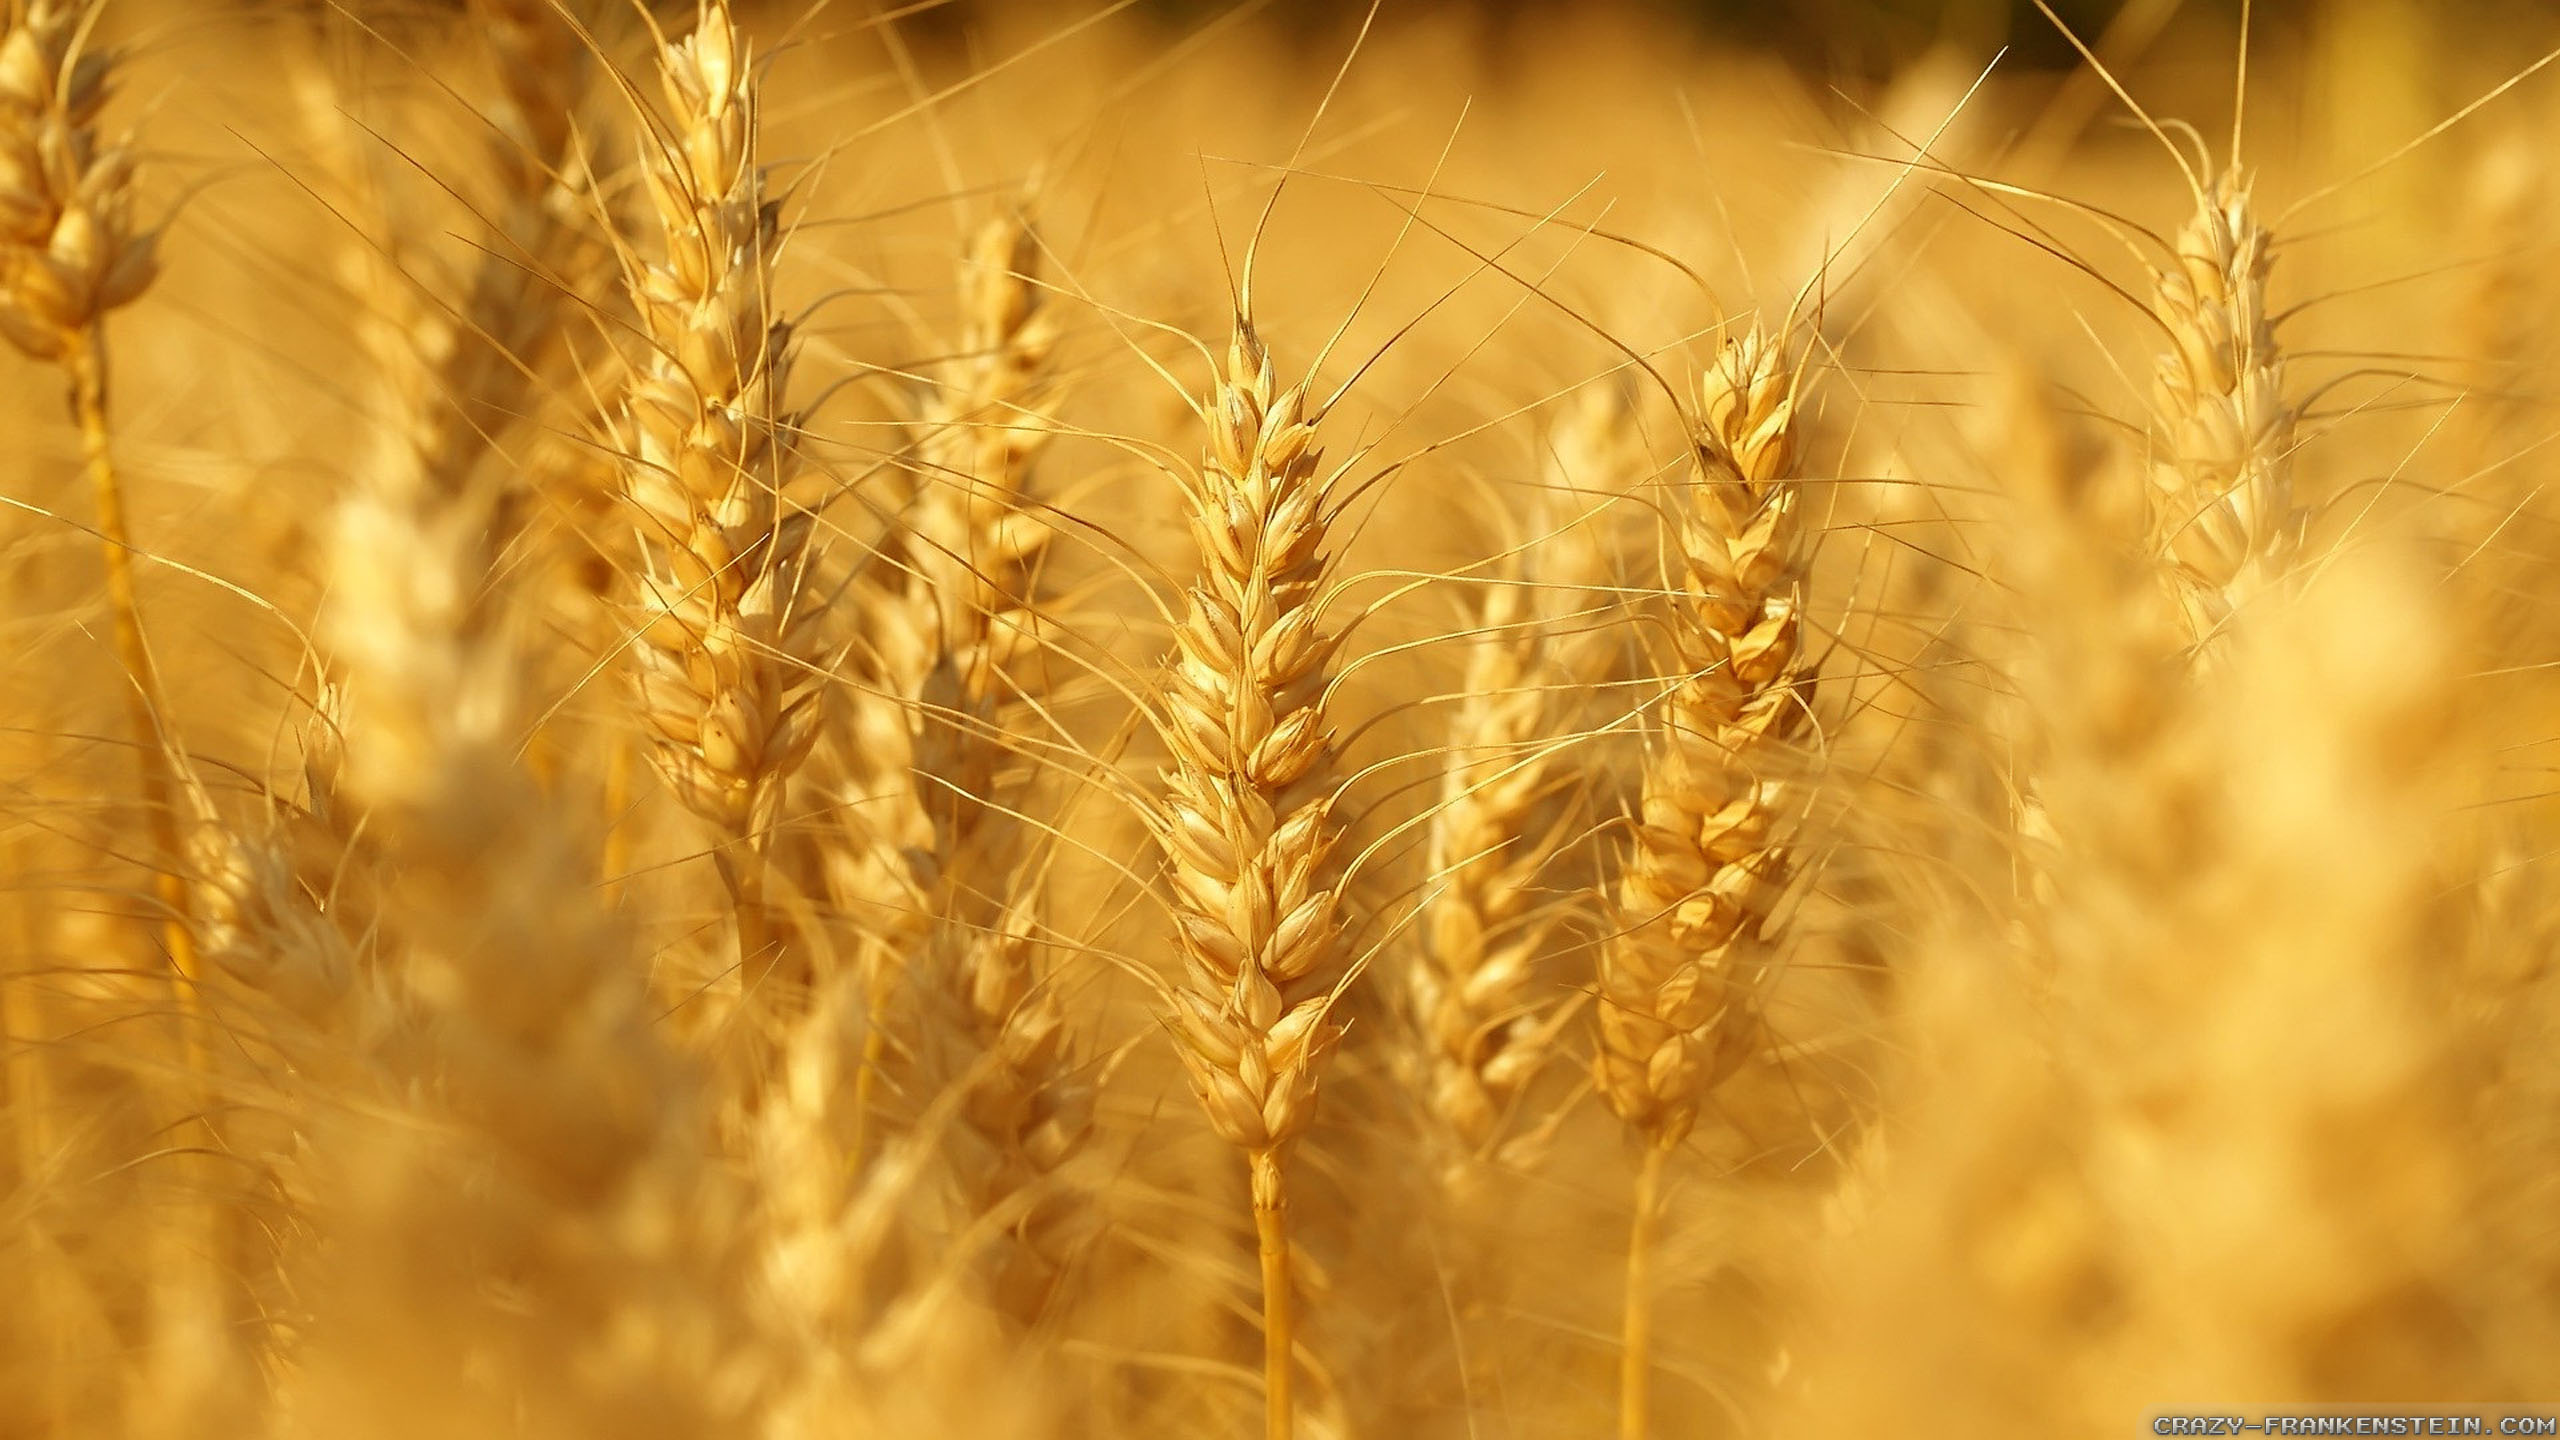 just-like-wheat-summer-nature-wallpapers-2560x1440